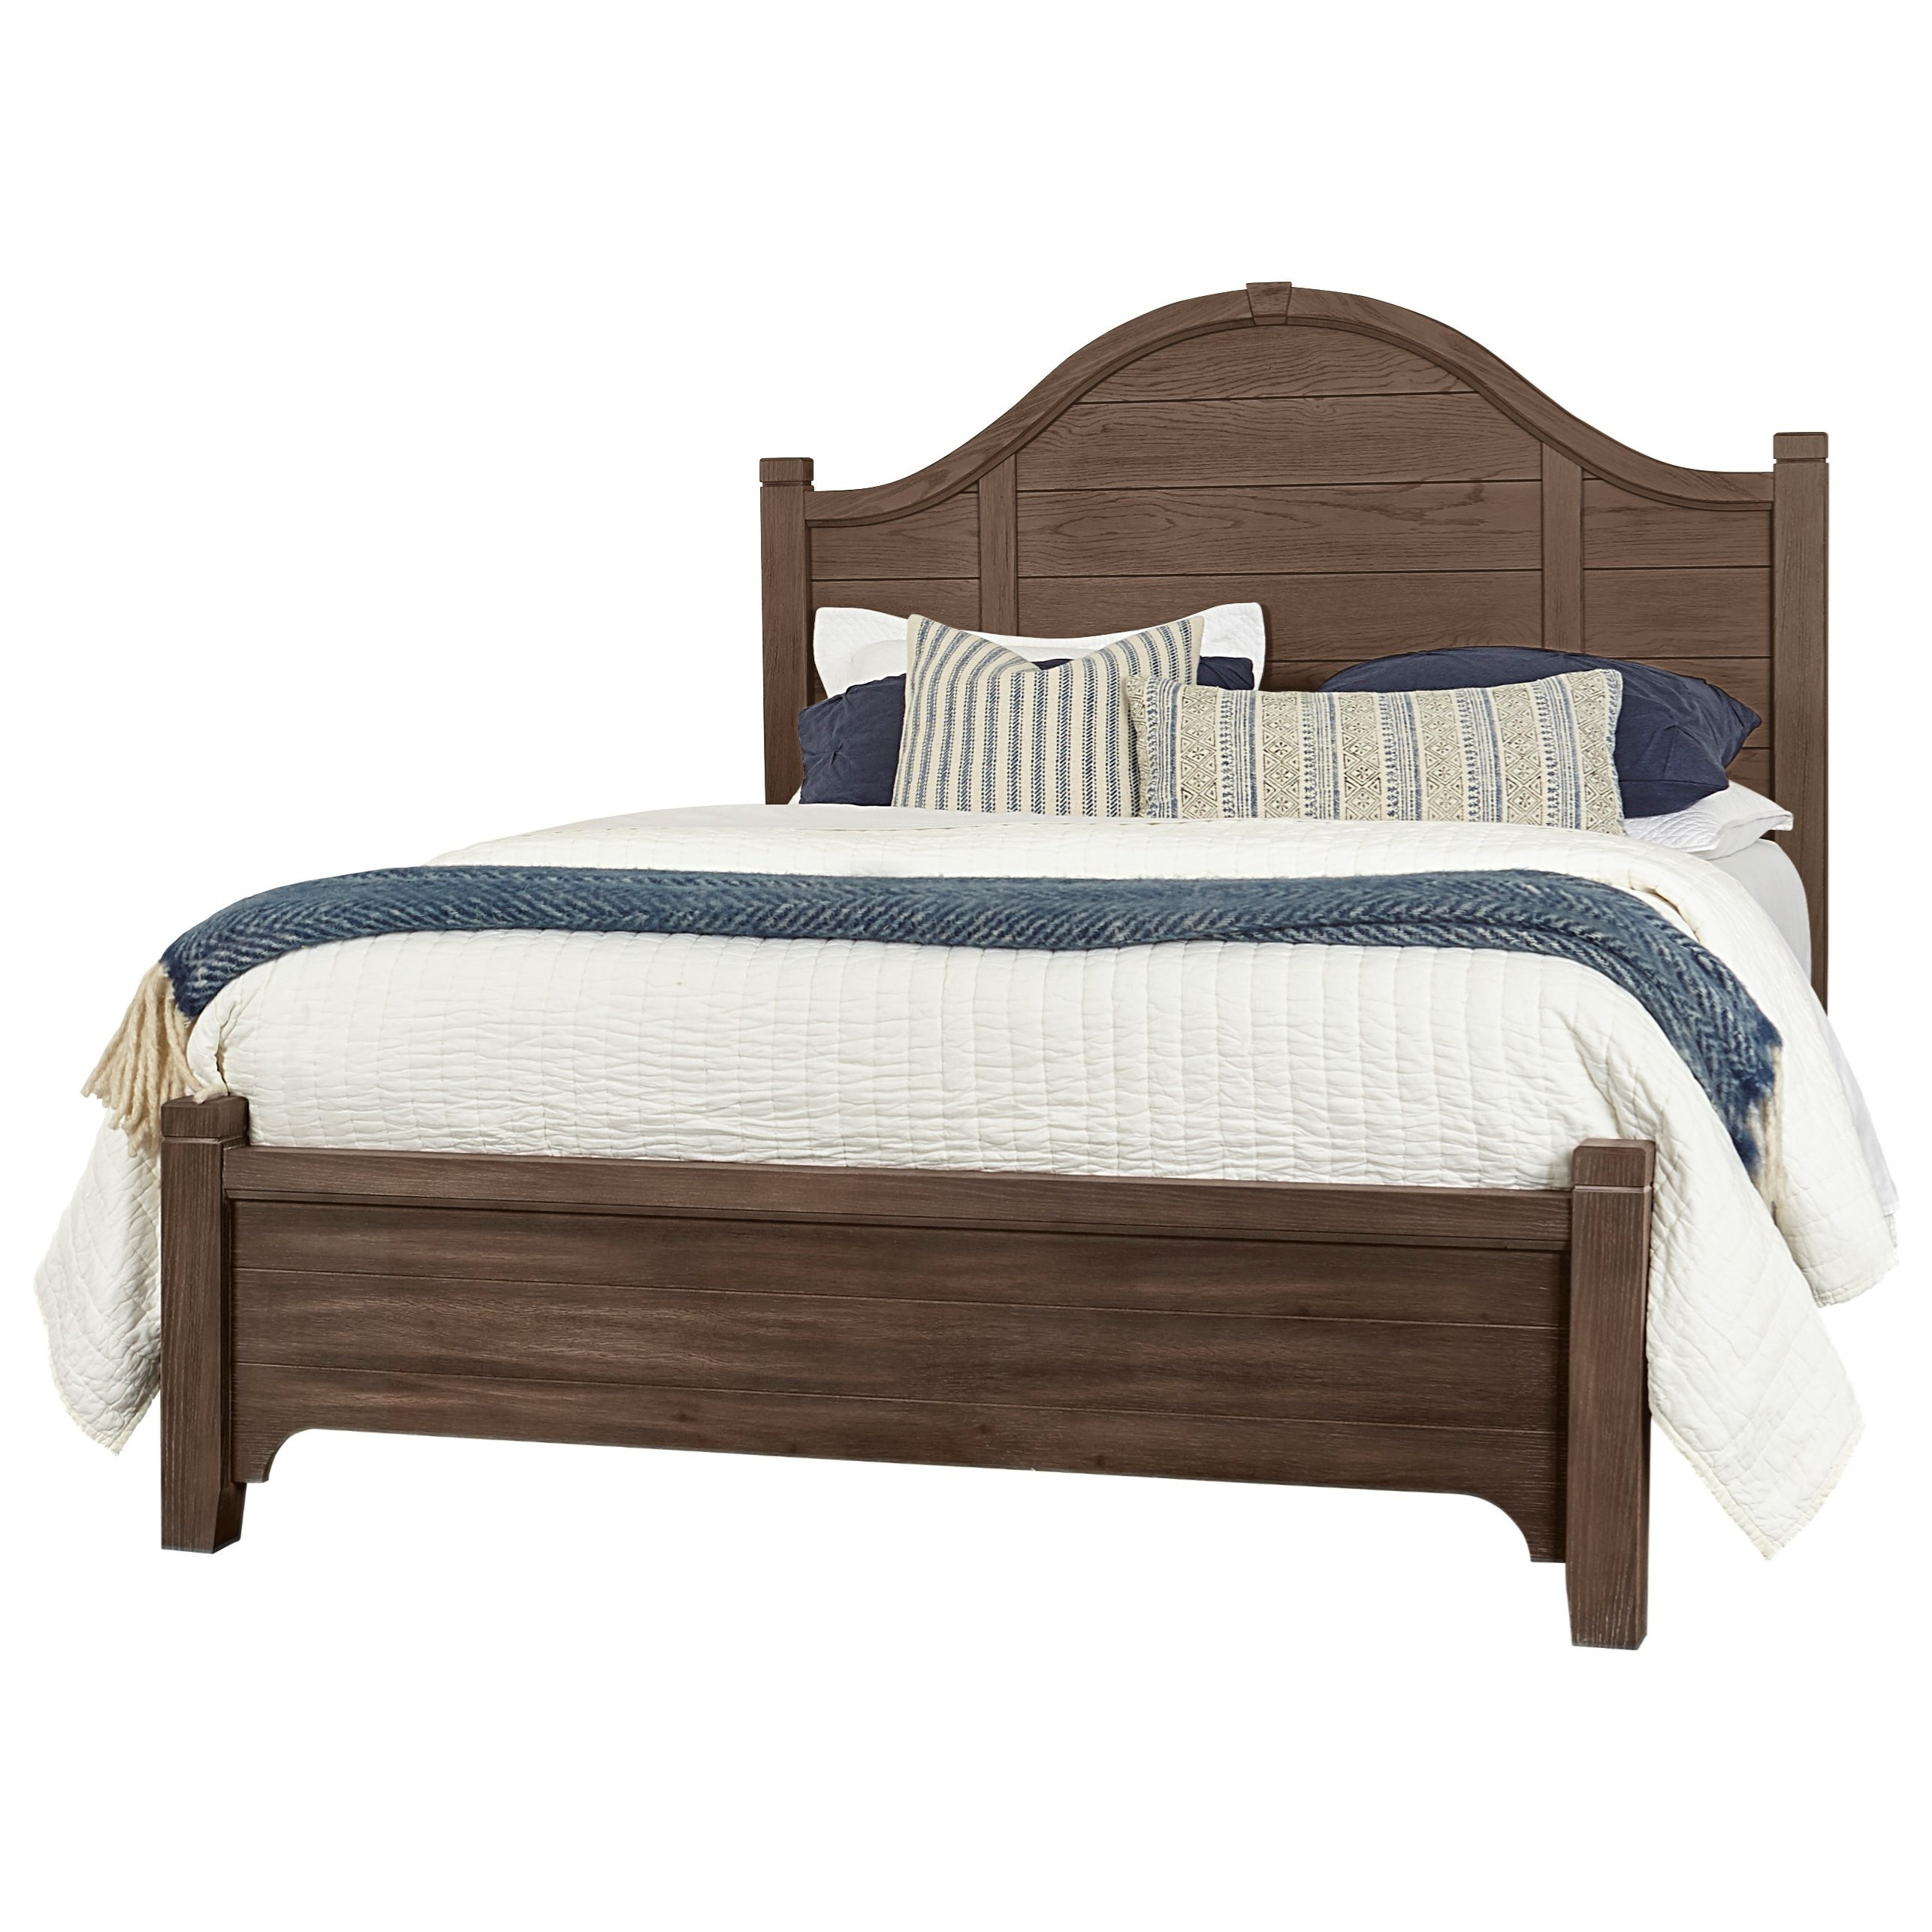 Bungalow King Low Profile Bed by Laurel Mercantile Co. at Johnny Janosik